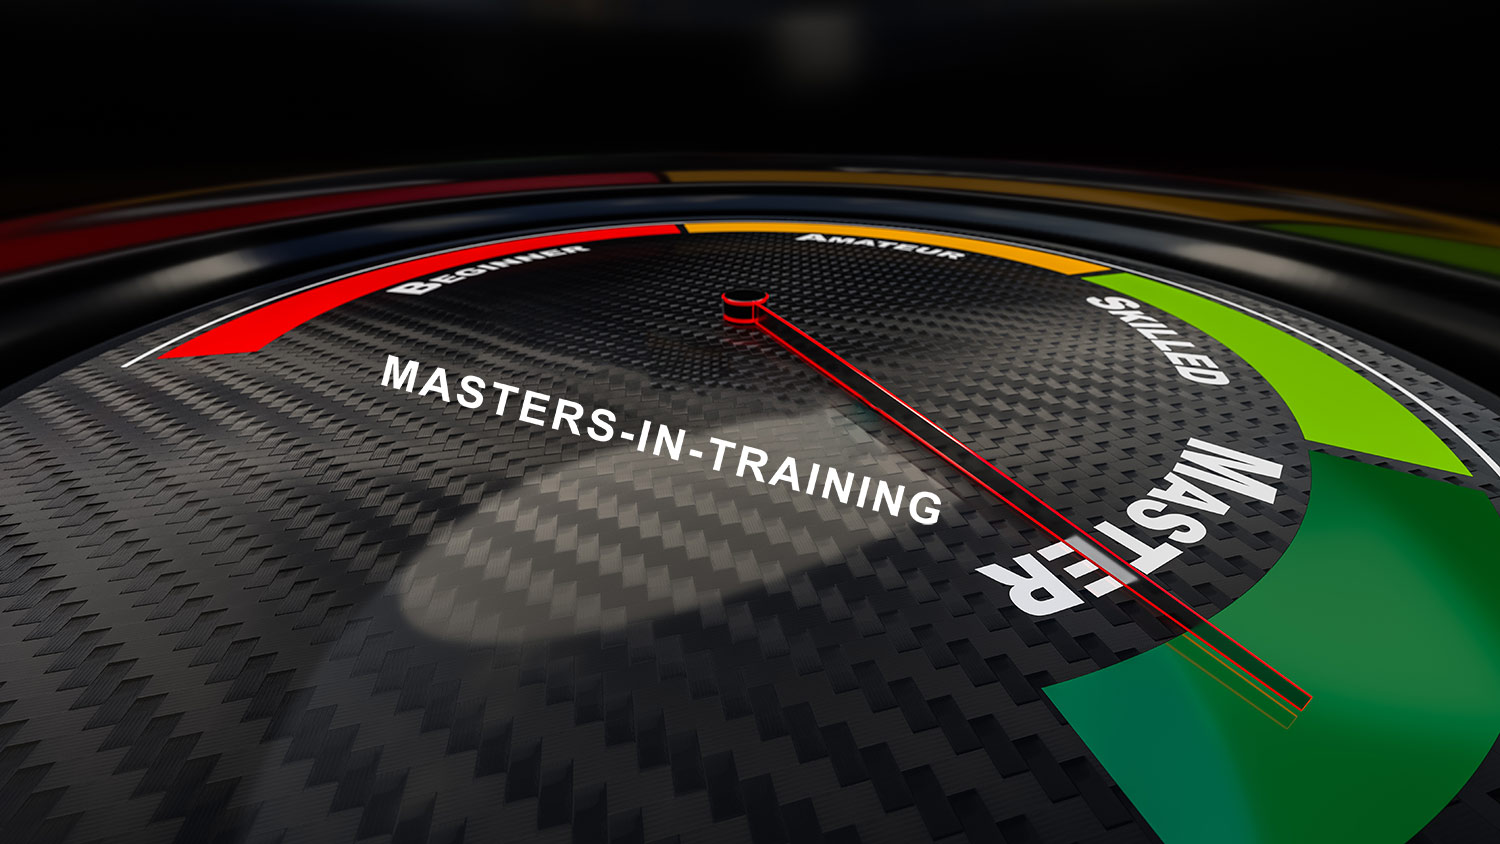 Masters-in-Training Course: More clients, knowledge and revenue. Less stress.